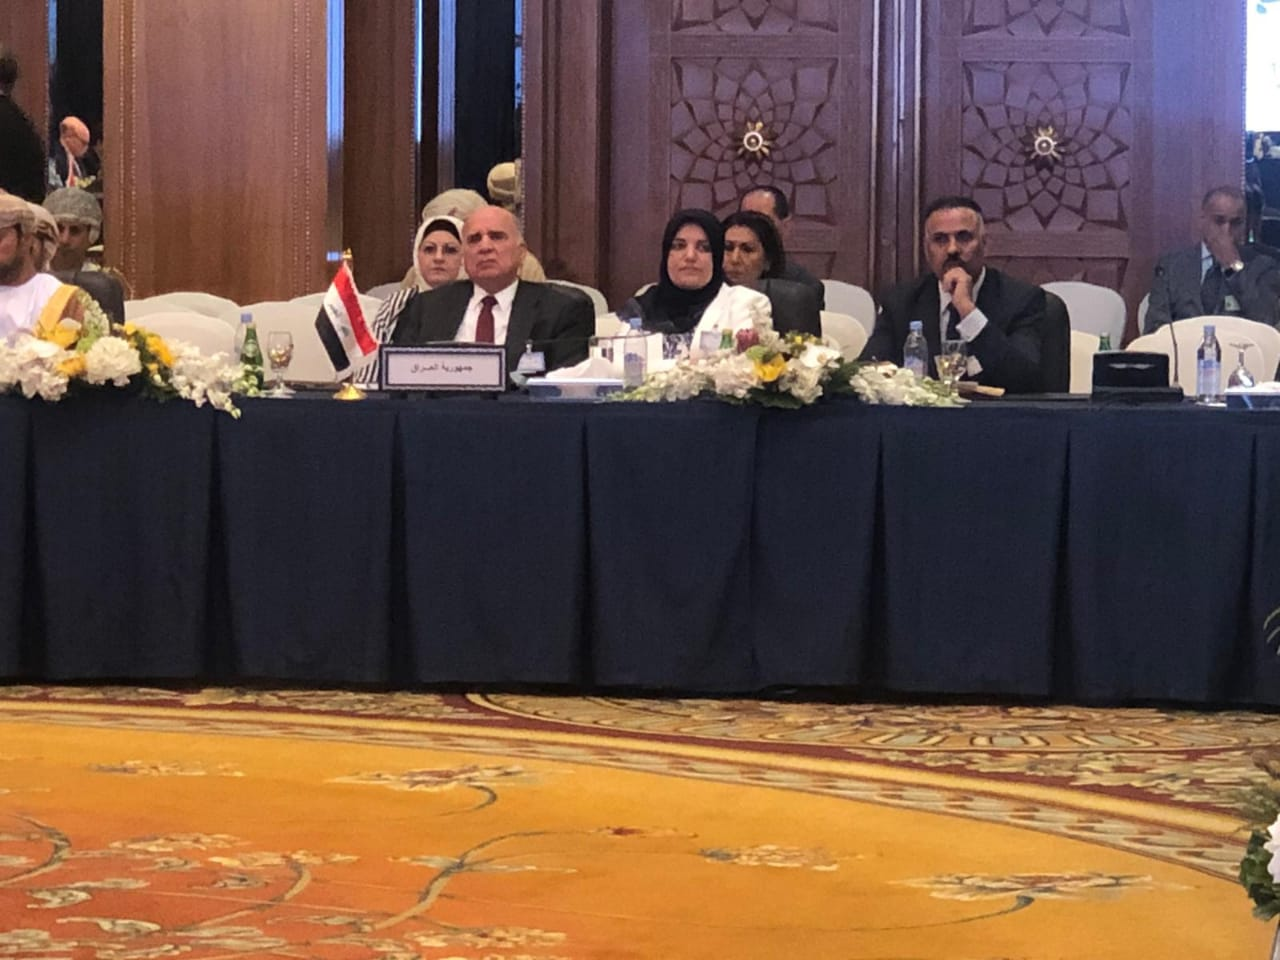 Two Boards of Governors of the Arab Bank for Economic Development The Deputy Prime Minister and Minister of Finance will elect a president for the next session 1caa7d33-bfcf-4a1f-a992-5bc28f83fc2e